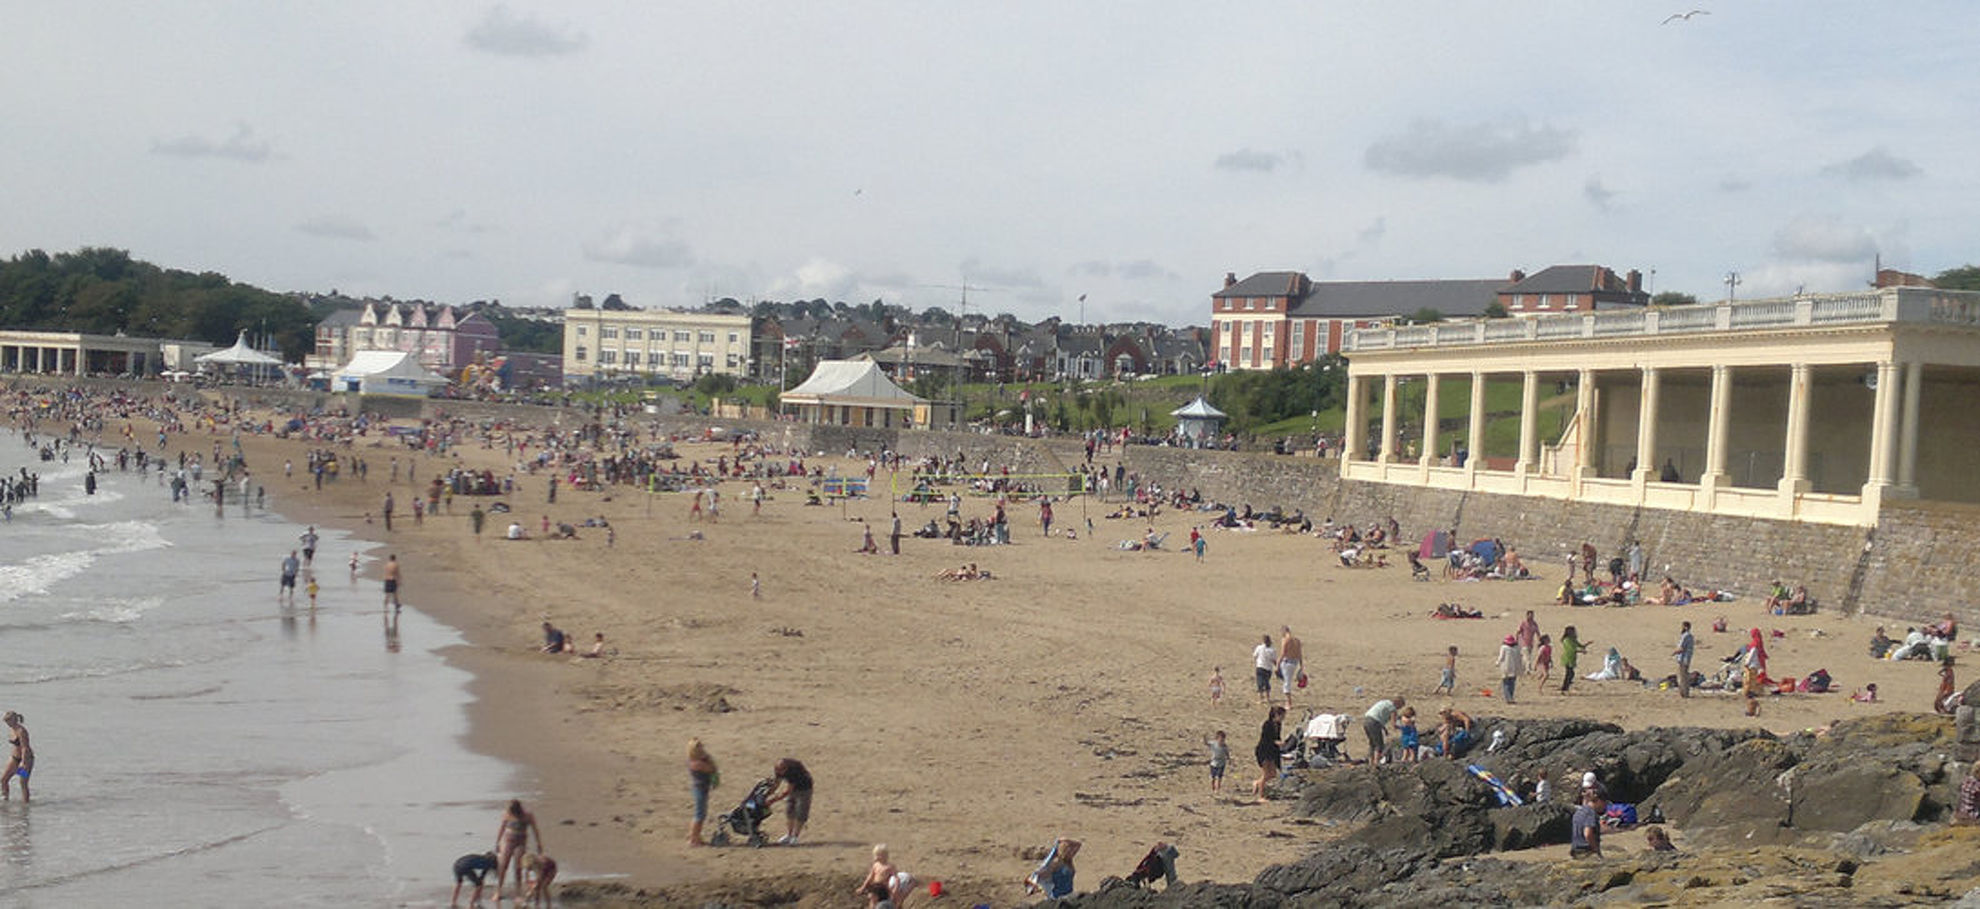 Explore Barry Island